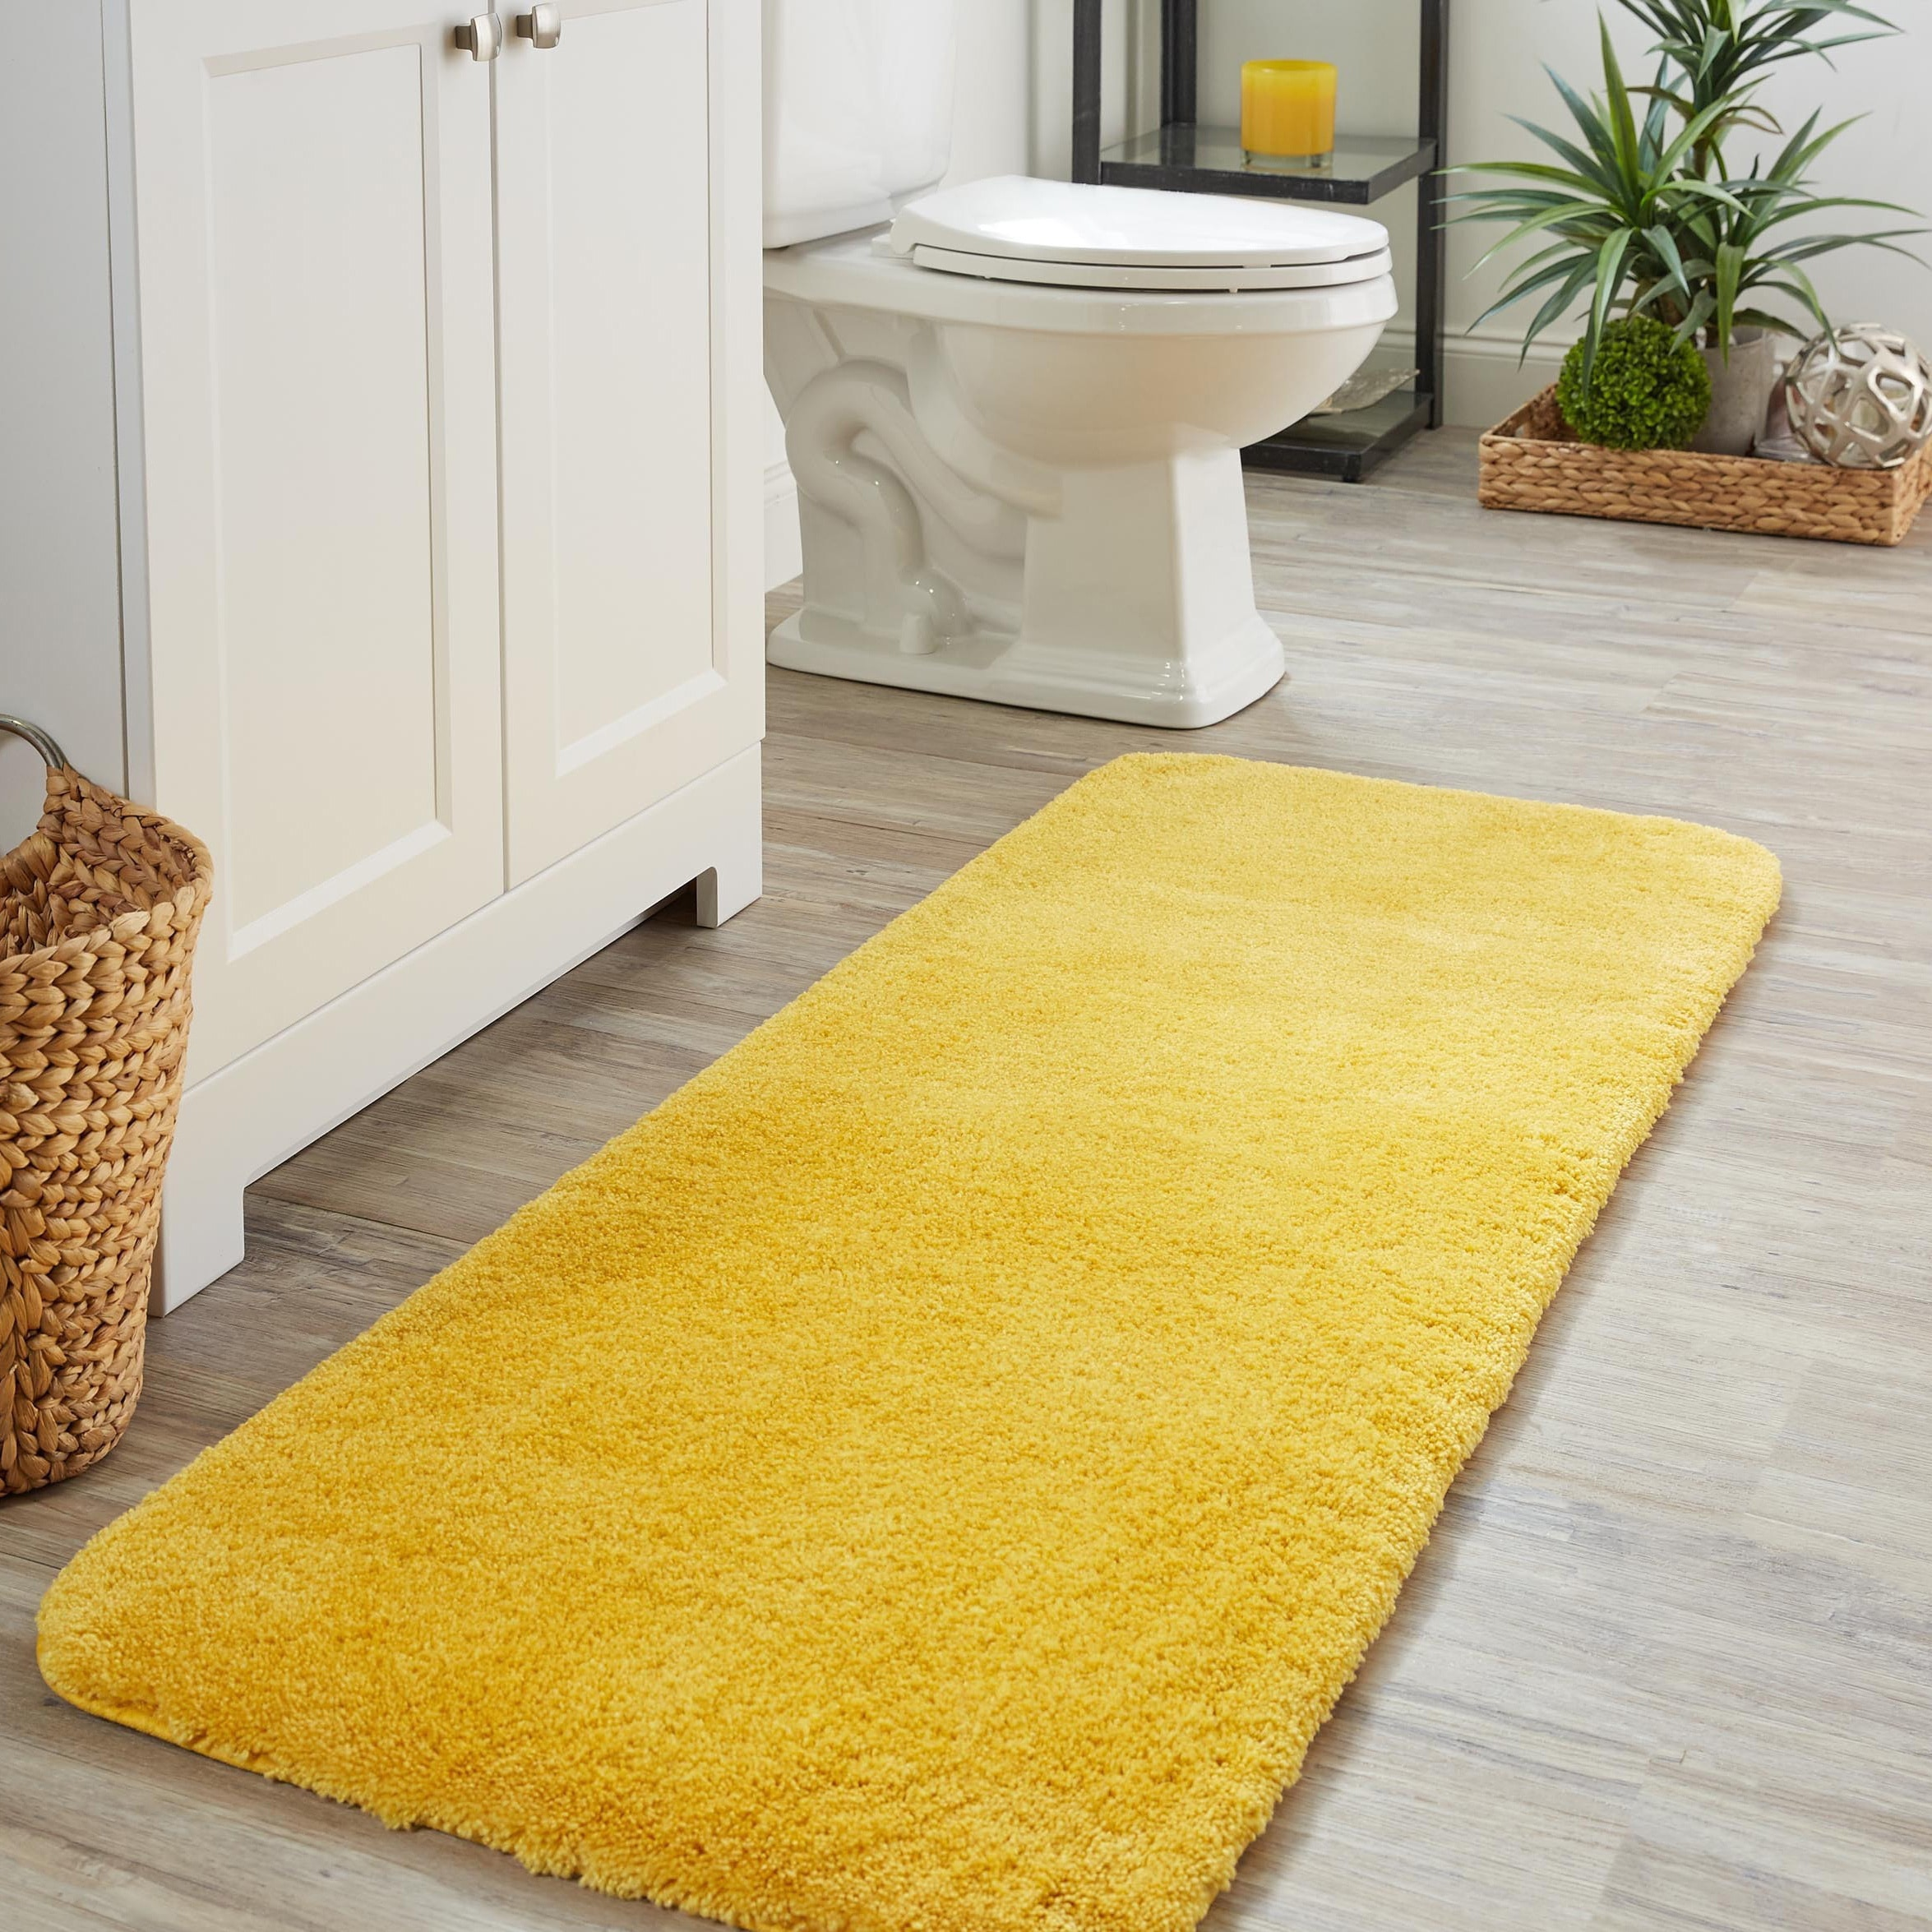 Shop For Mohawk Spa Bath Rug 2 X5 Get Free Delivery On Everything At Overstock Your Online Bath Linens Store Get 5 In Rewards With Club O 13741961